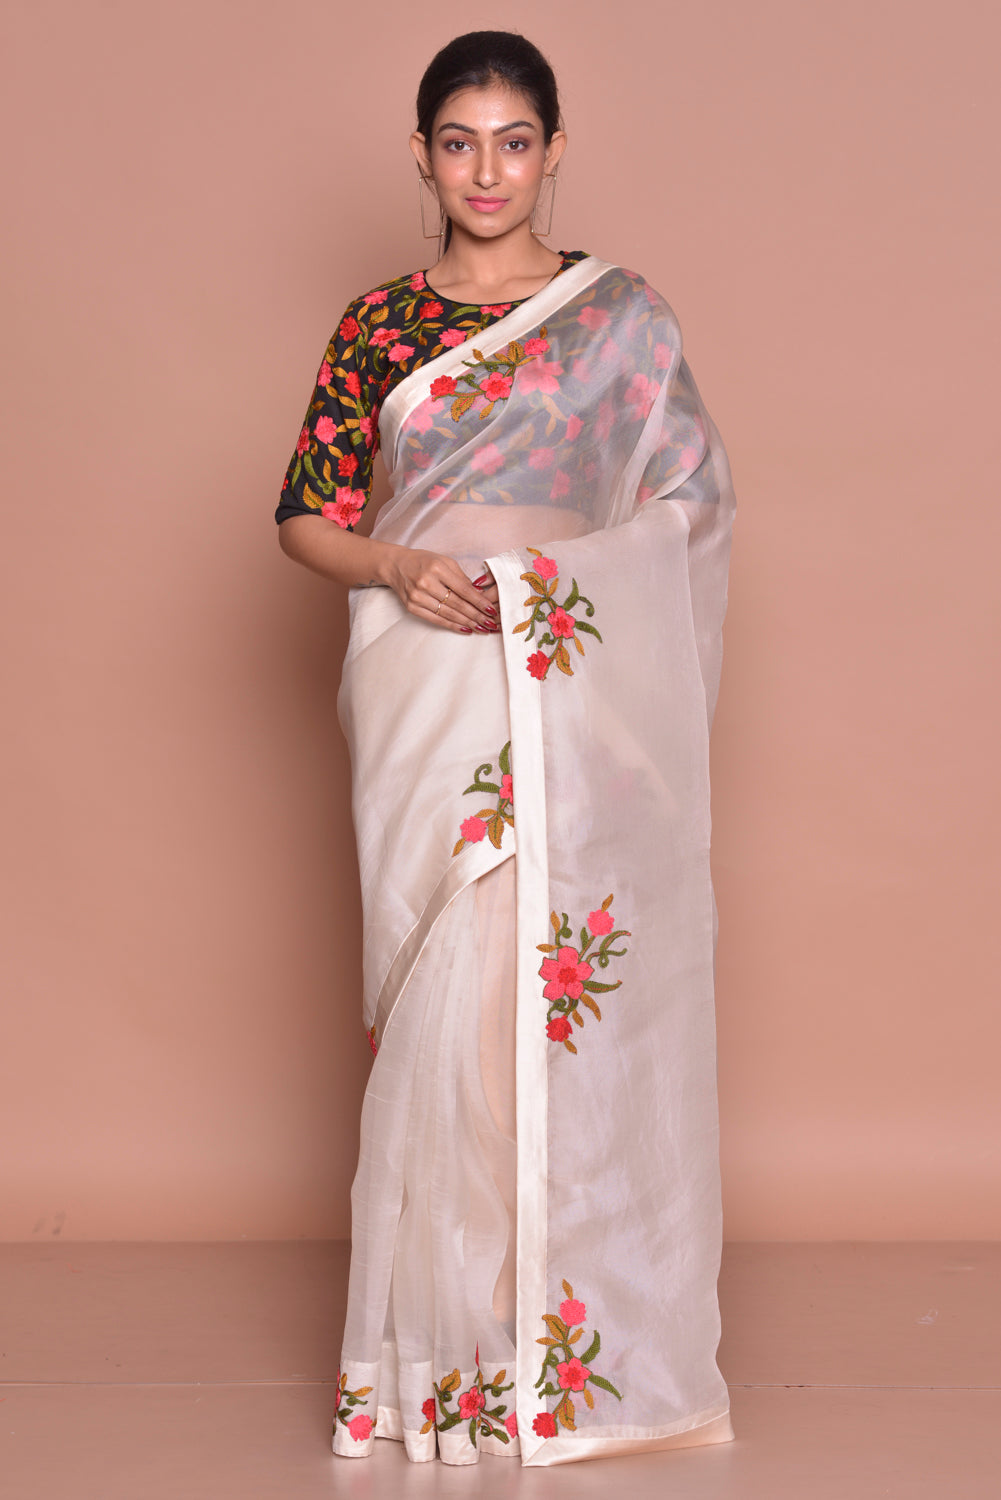 Buy off-white embroidered organza sari online in USA with black floral saree blouse. Set ethnic fashion goals with exquisite silk sarees with blouse, Banarasi sarees, Kanchipuram saris from Pure Elegance Indian luxury clothing store in USA.-full view